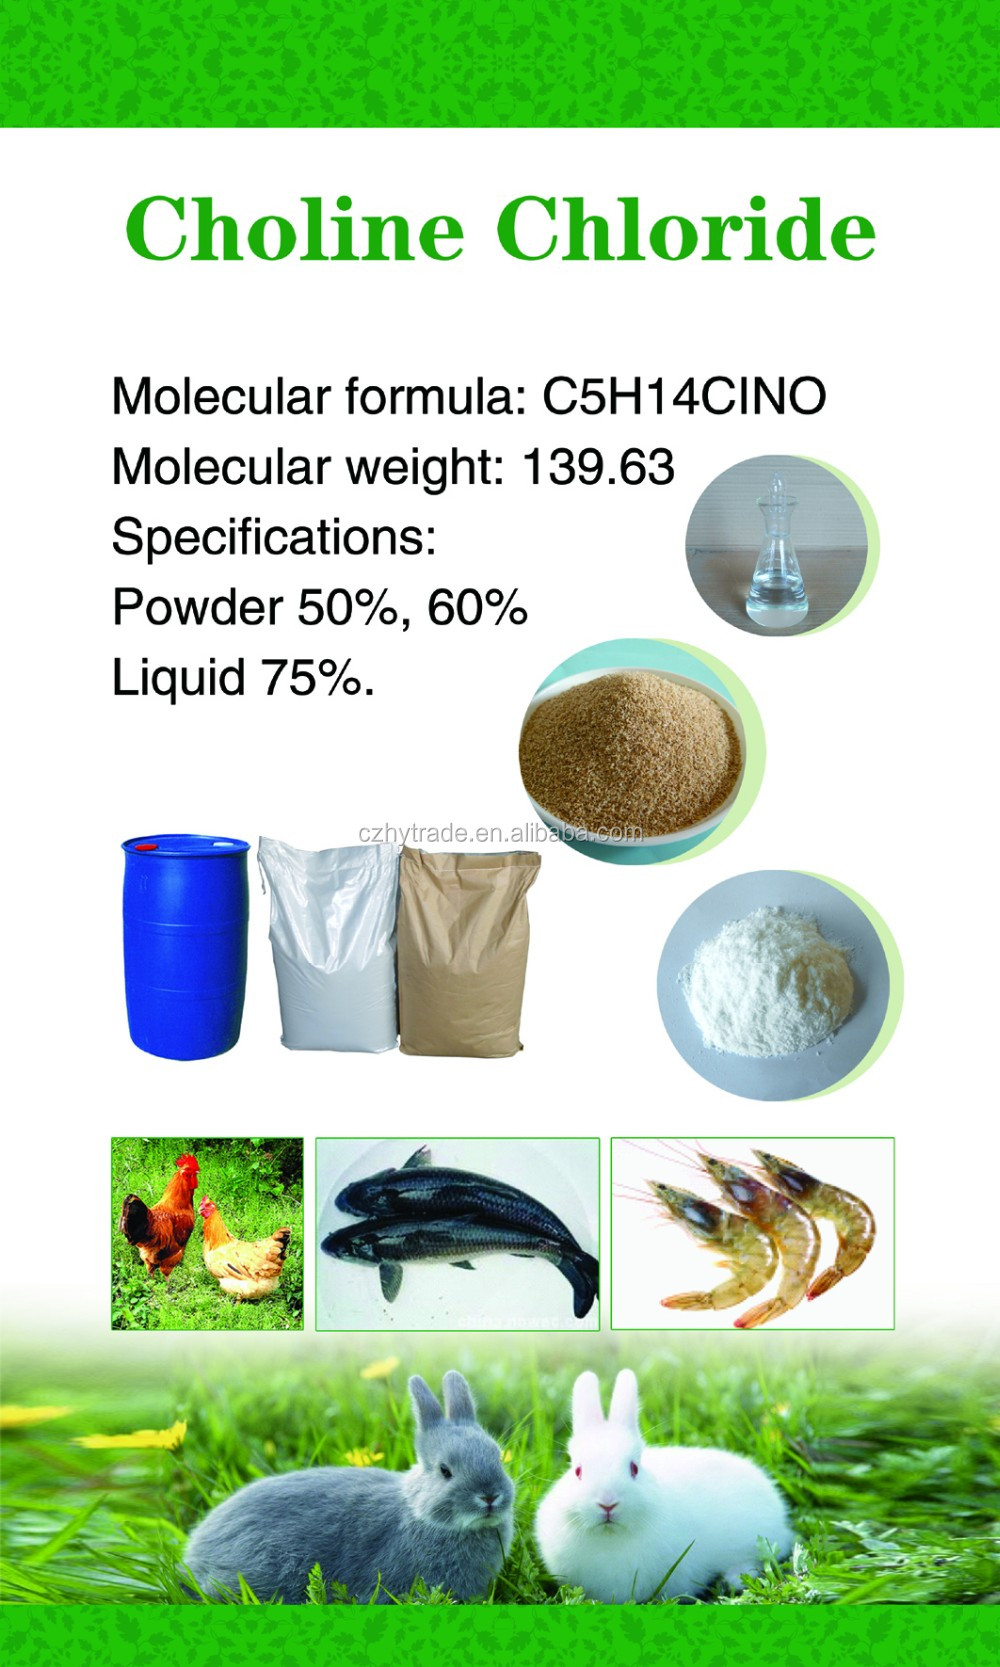 Choline chloride 70% 75% solution / Poultry vitamin supplement for dairy cows